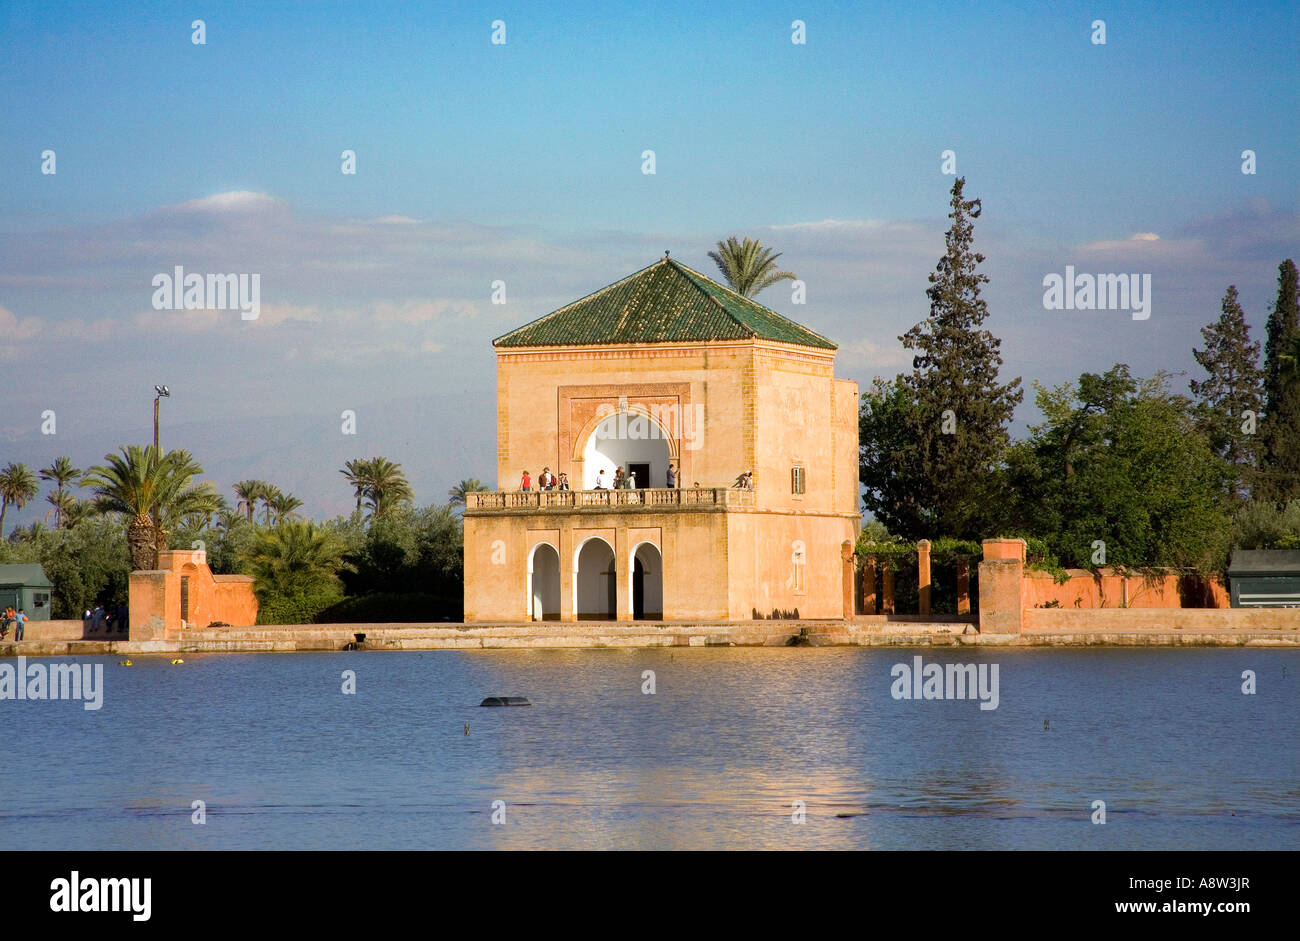 The Jardin de la Menara in Marrakech Stock Photo, Royalty ...